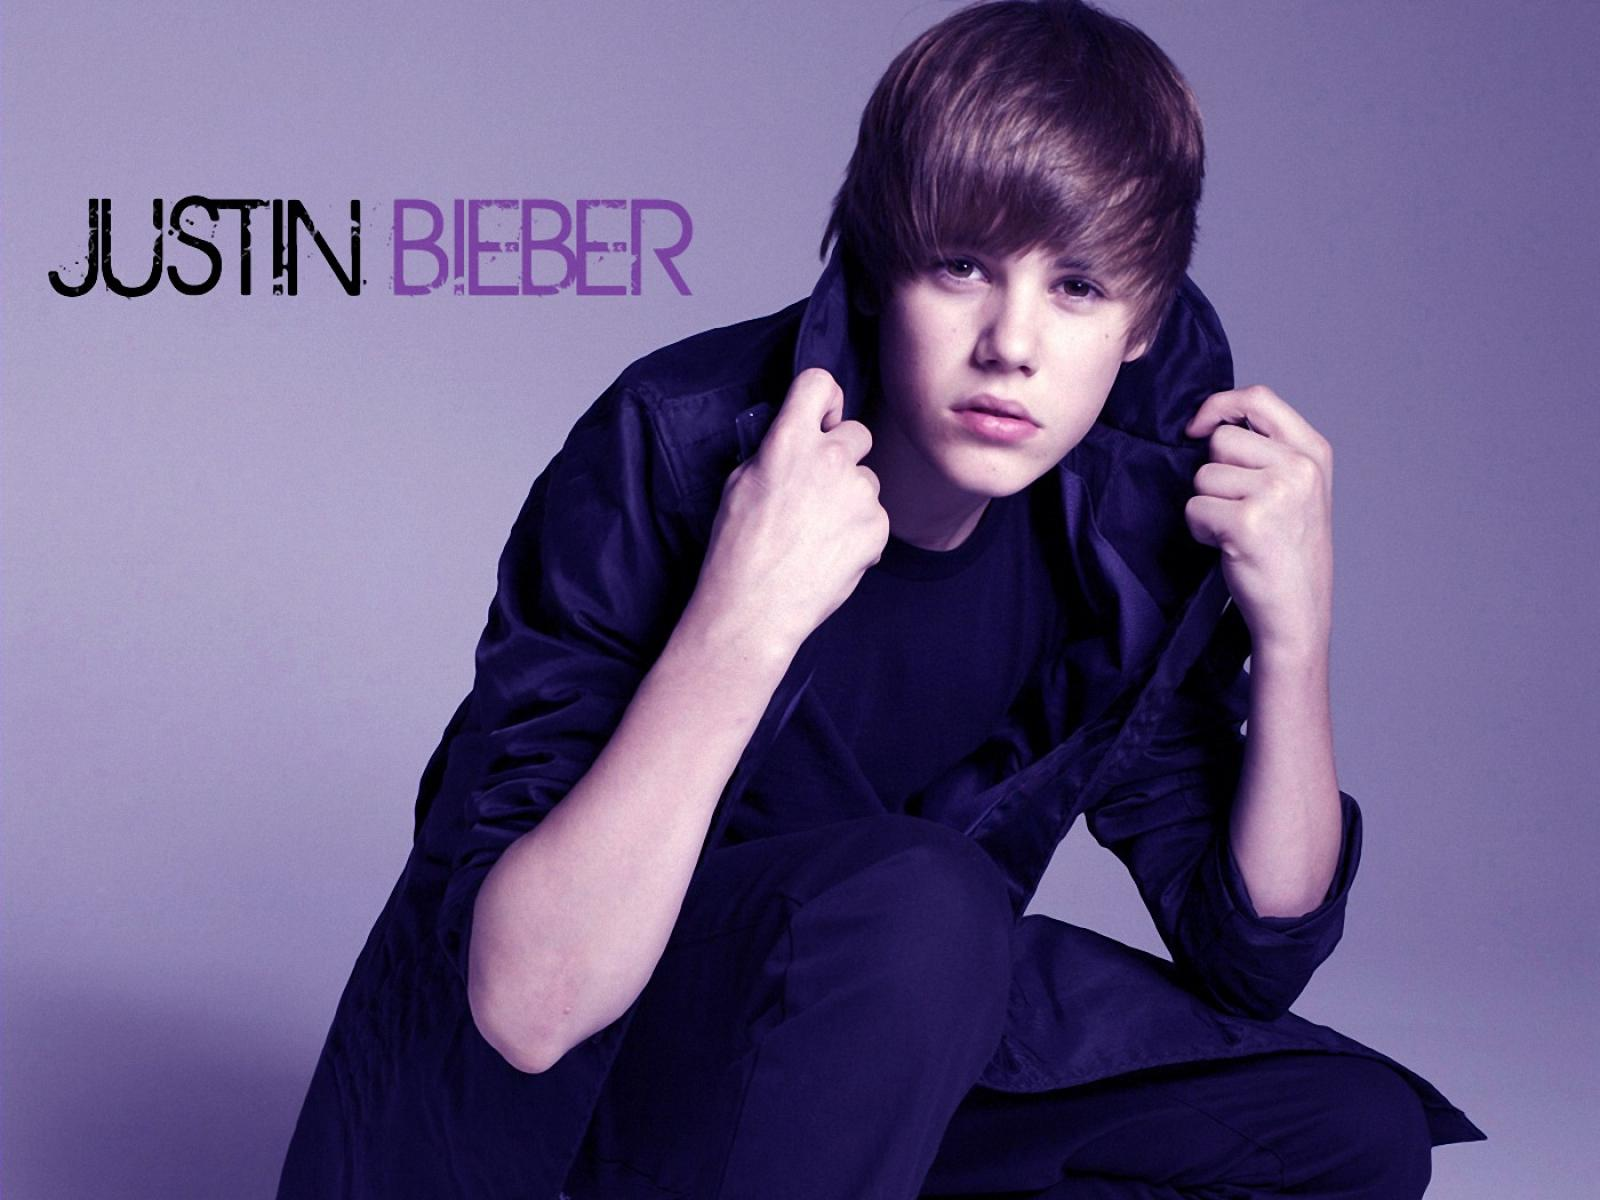 Justin Bieber Wallpapers HD 2015 - Wallpaper Cave